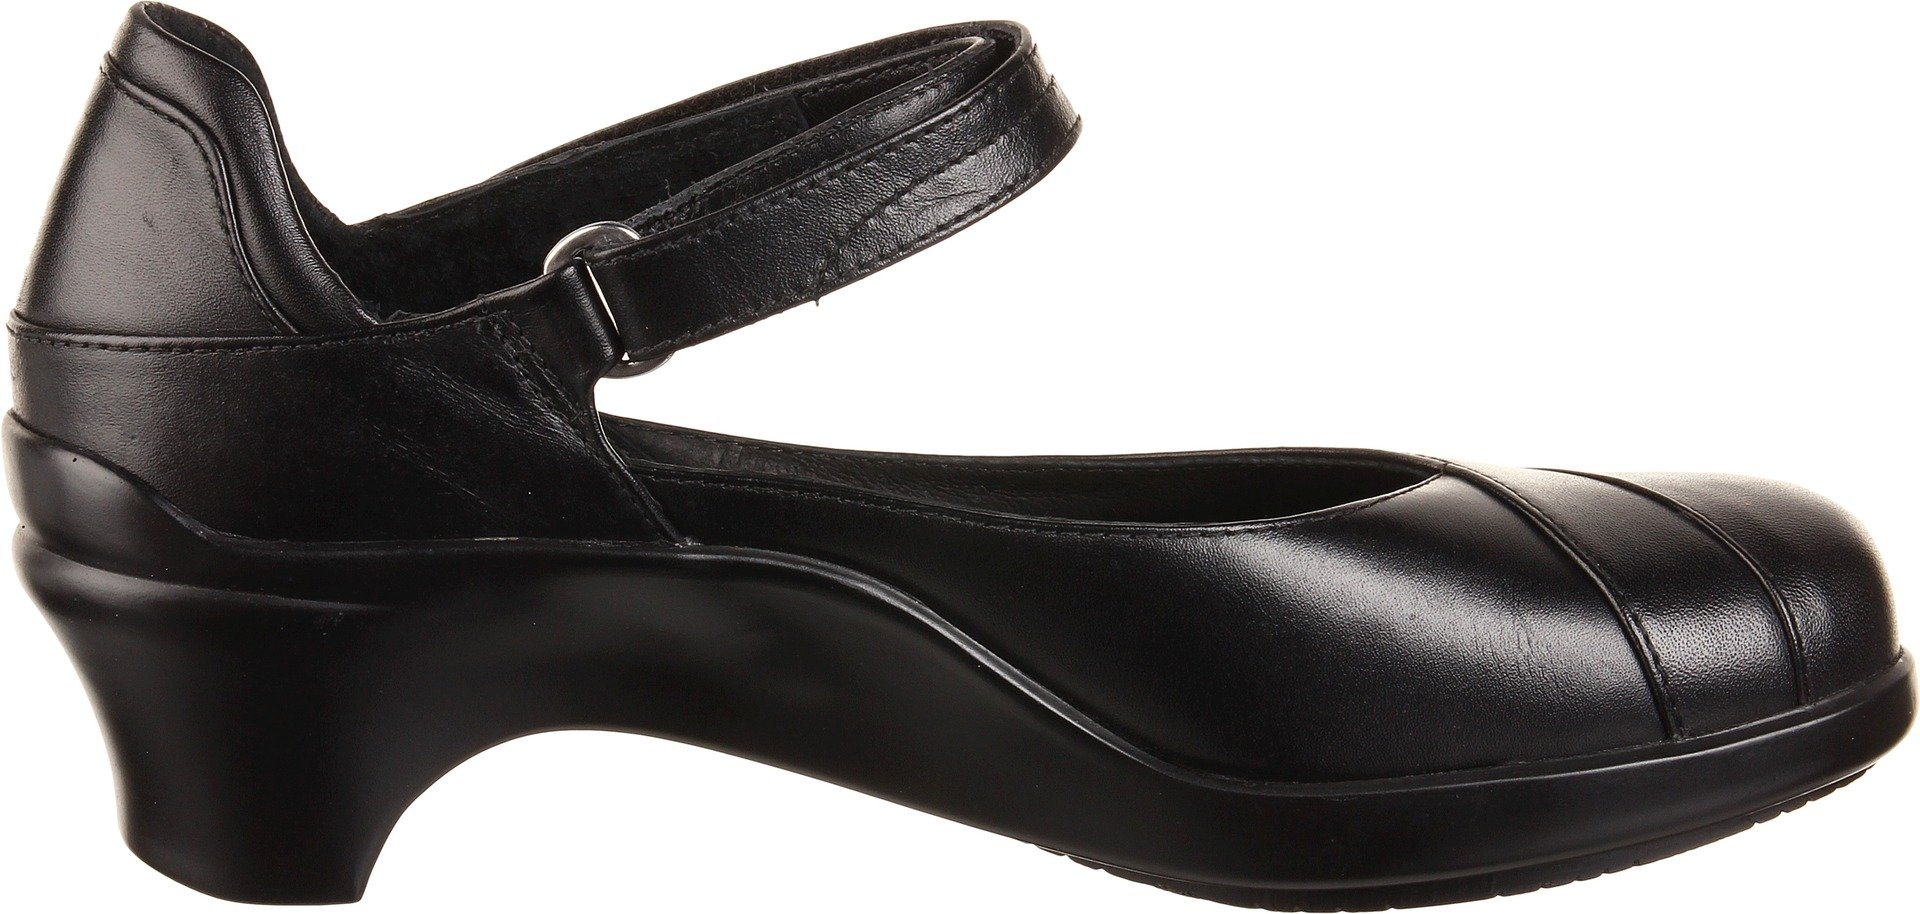 Aravon Womens Maya Pump,Black Leather,10.5 M (B) US by Aravon (Image #6)